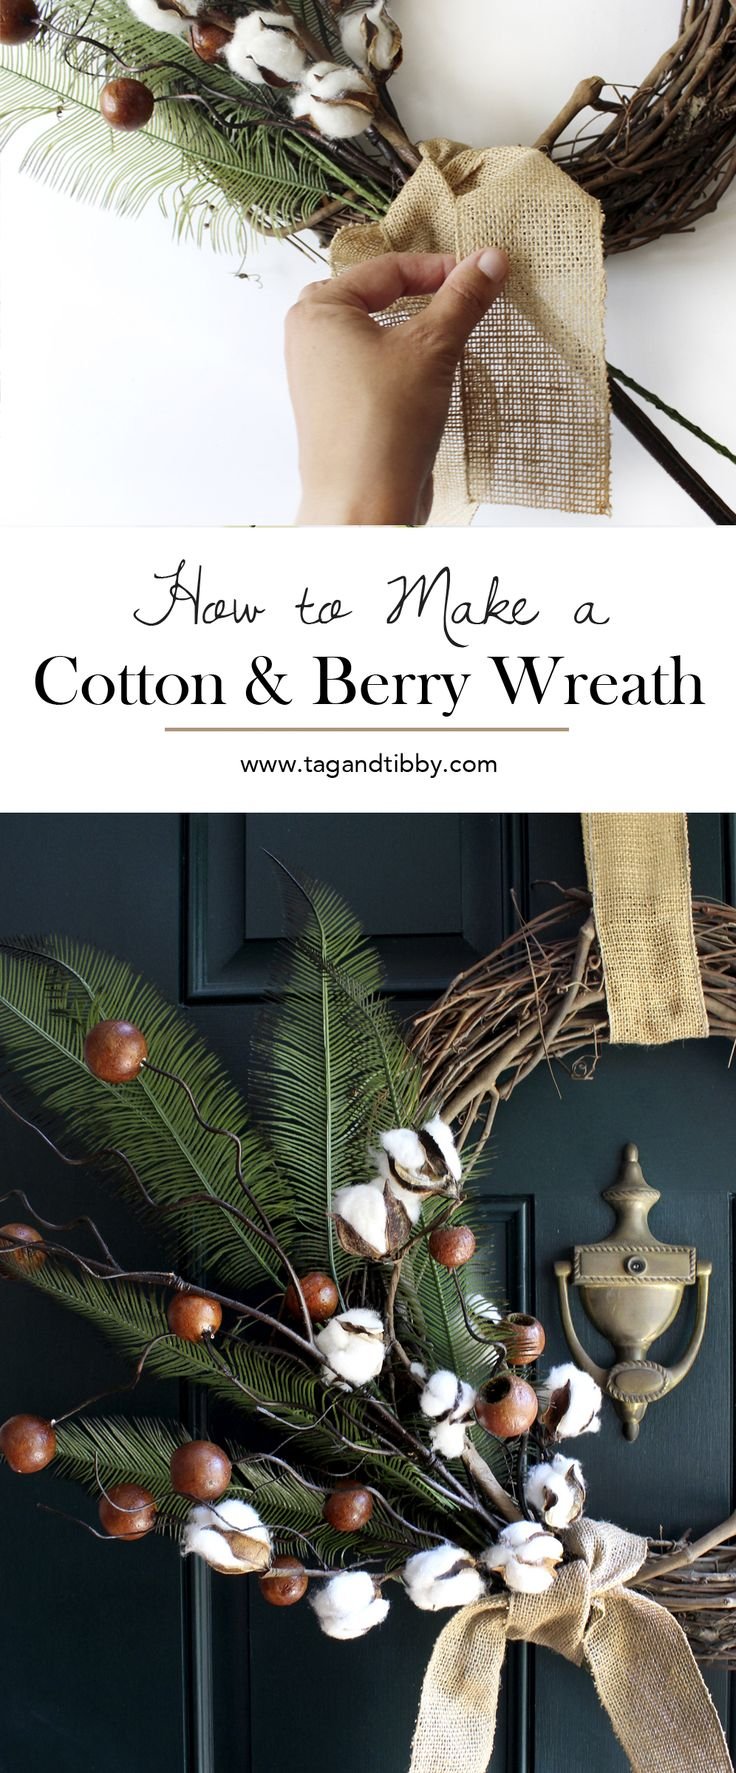 Home decorating diy projects how to make a cotton and for How to make a home decorations